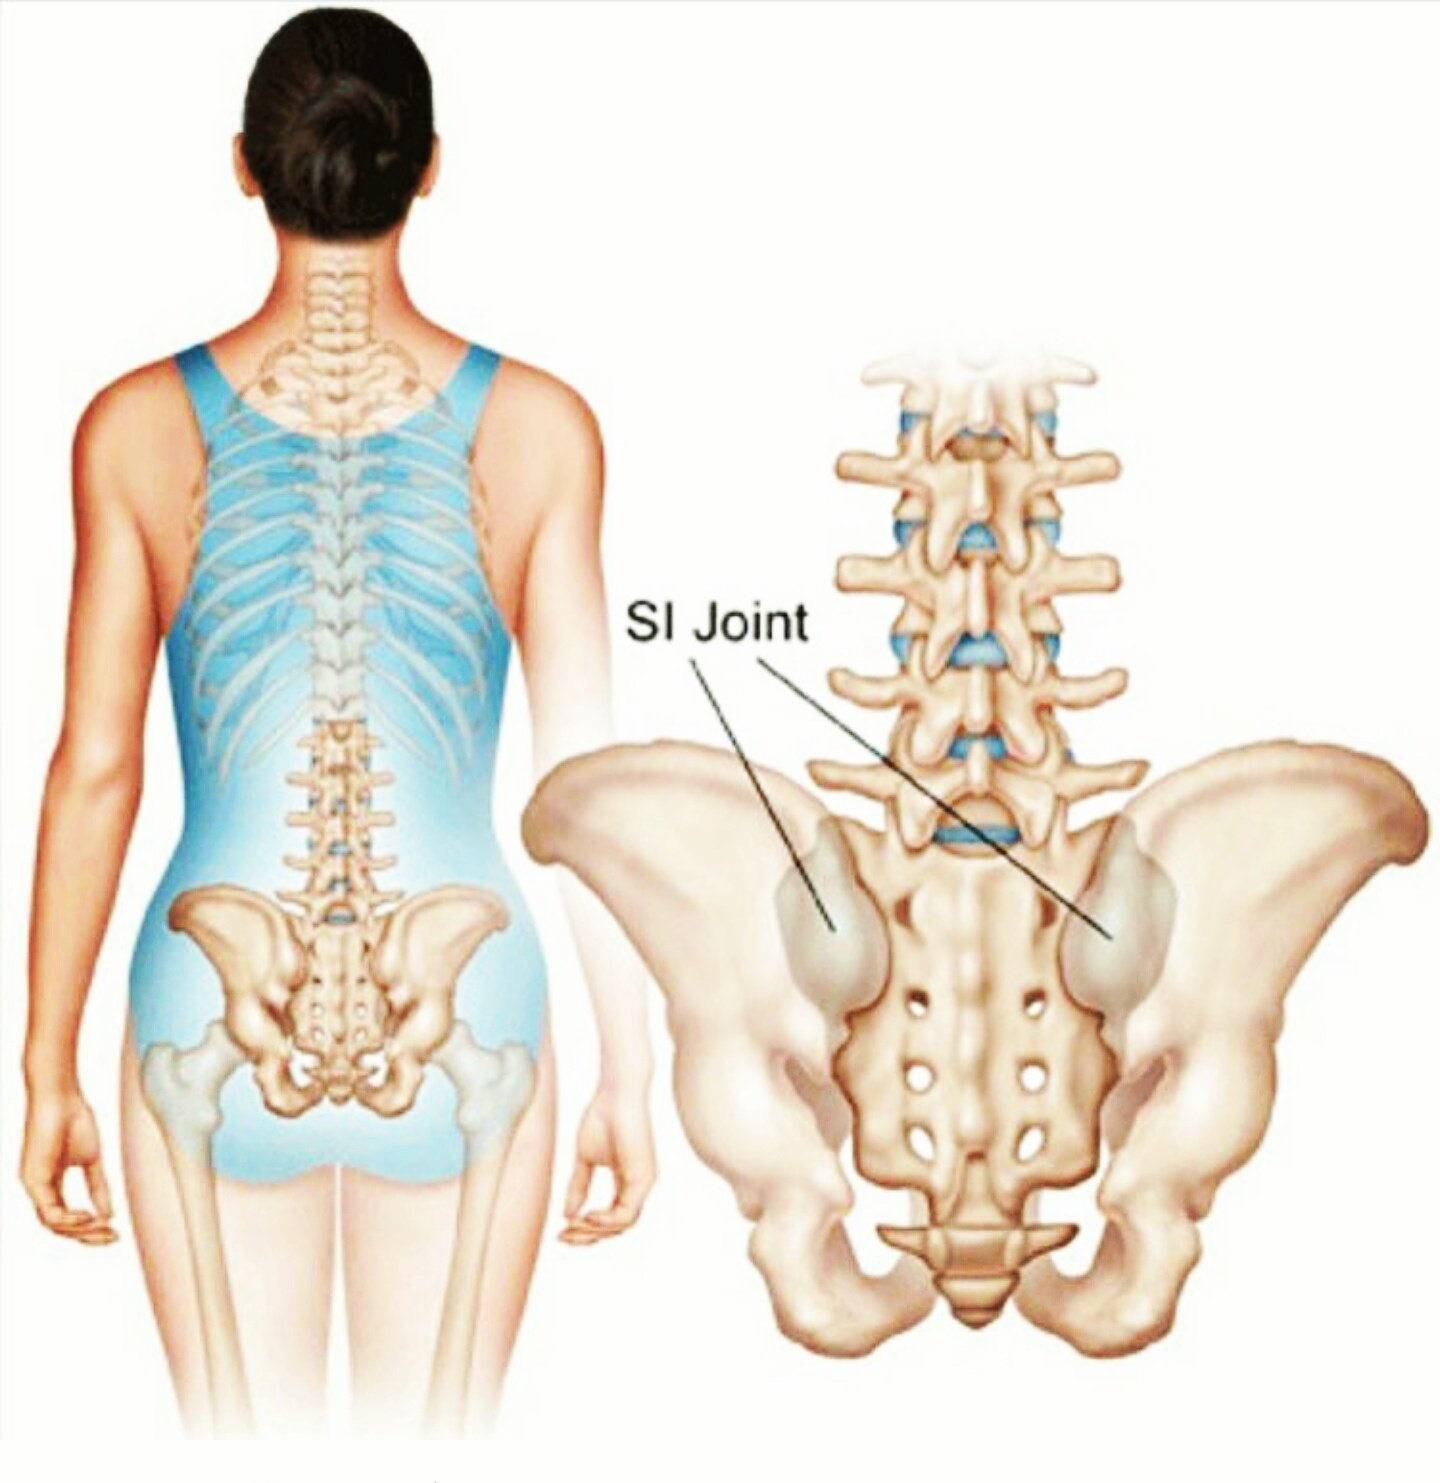 SI Joint hip osteopathic